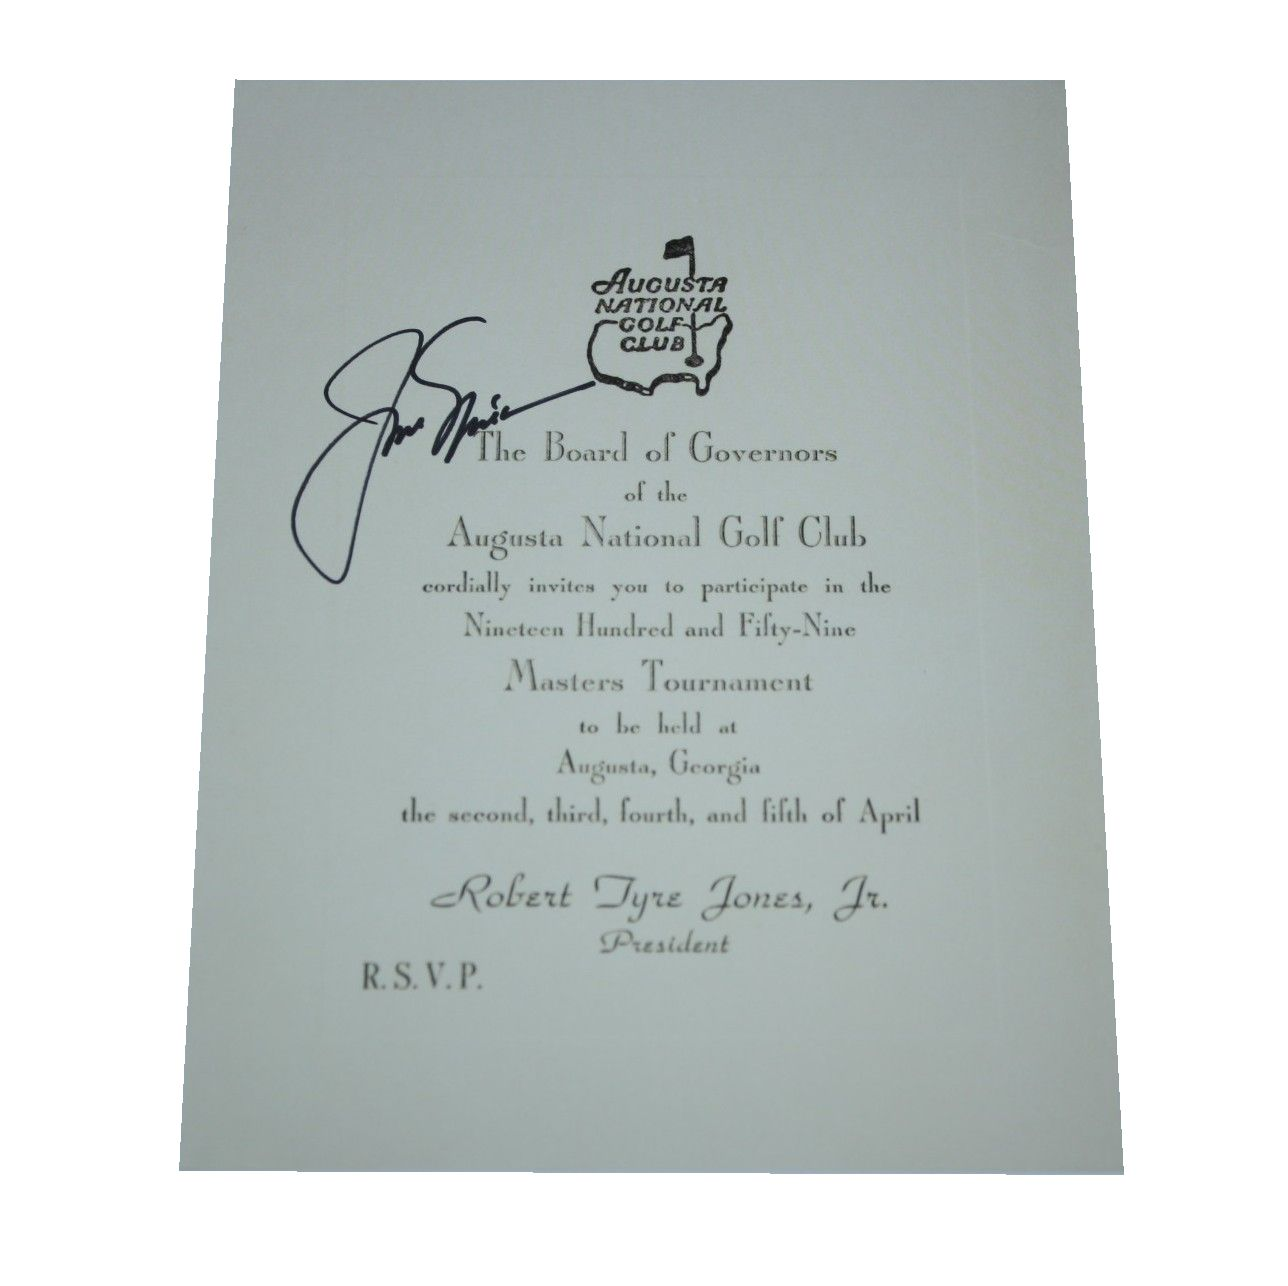 Golf tournament invitation letter letter idea 2018 tournament invitation letter jsa coa lot detail jack nicklaus signed reion 1959 masters stopboris Images